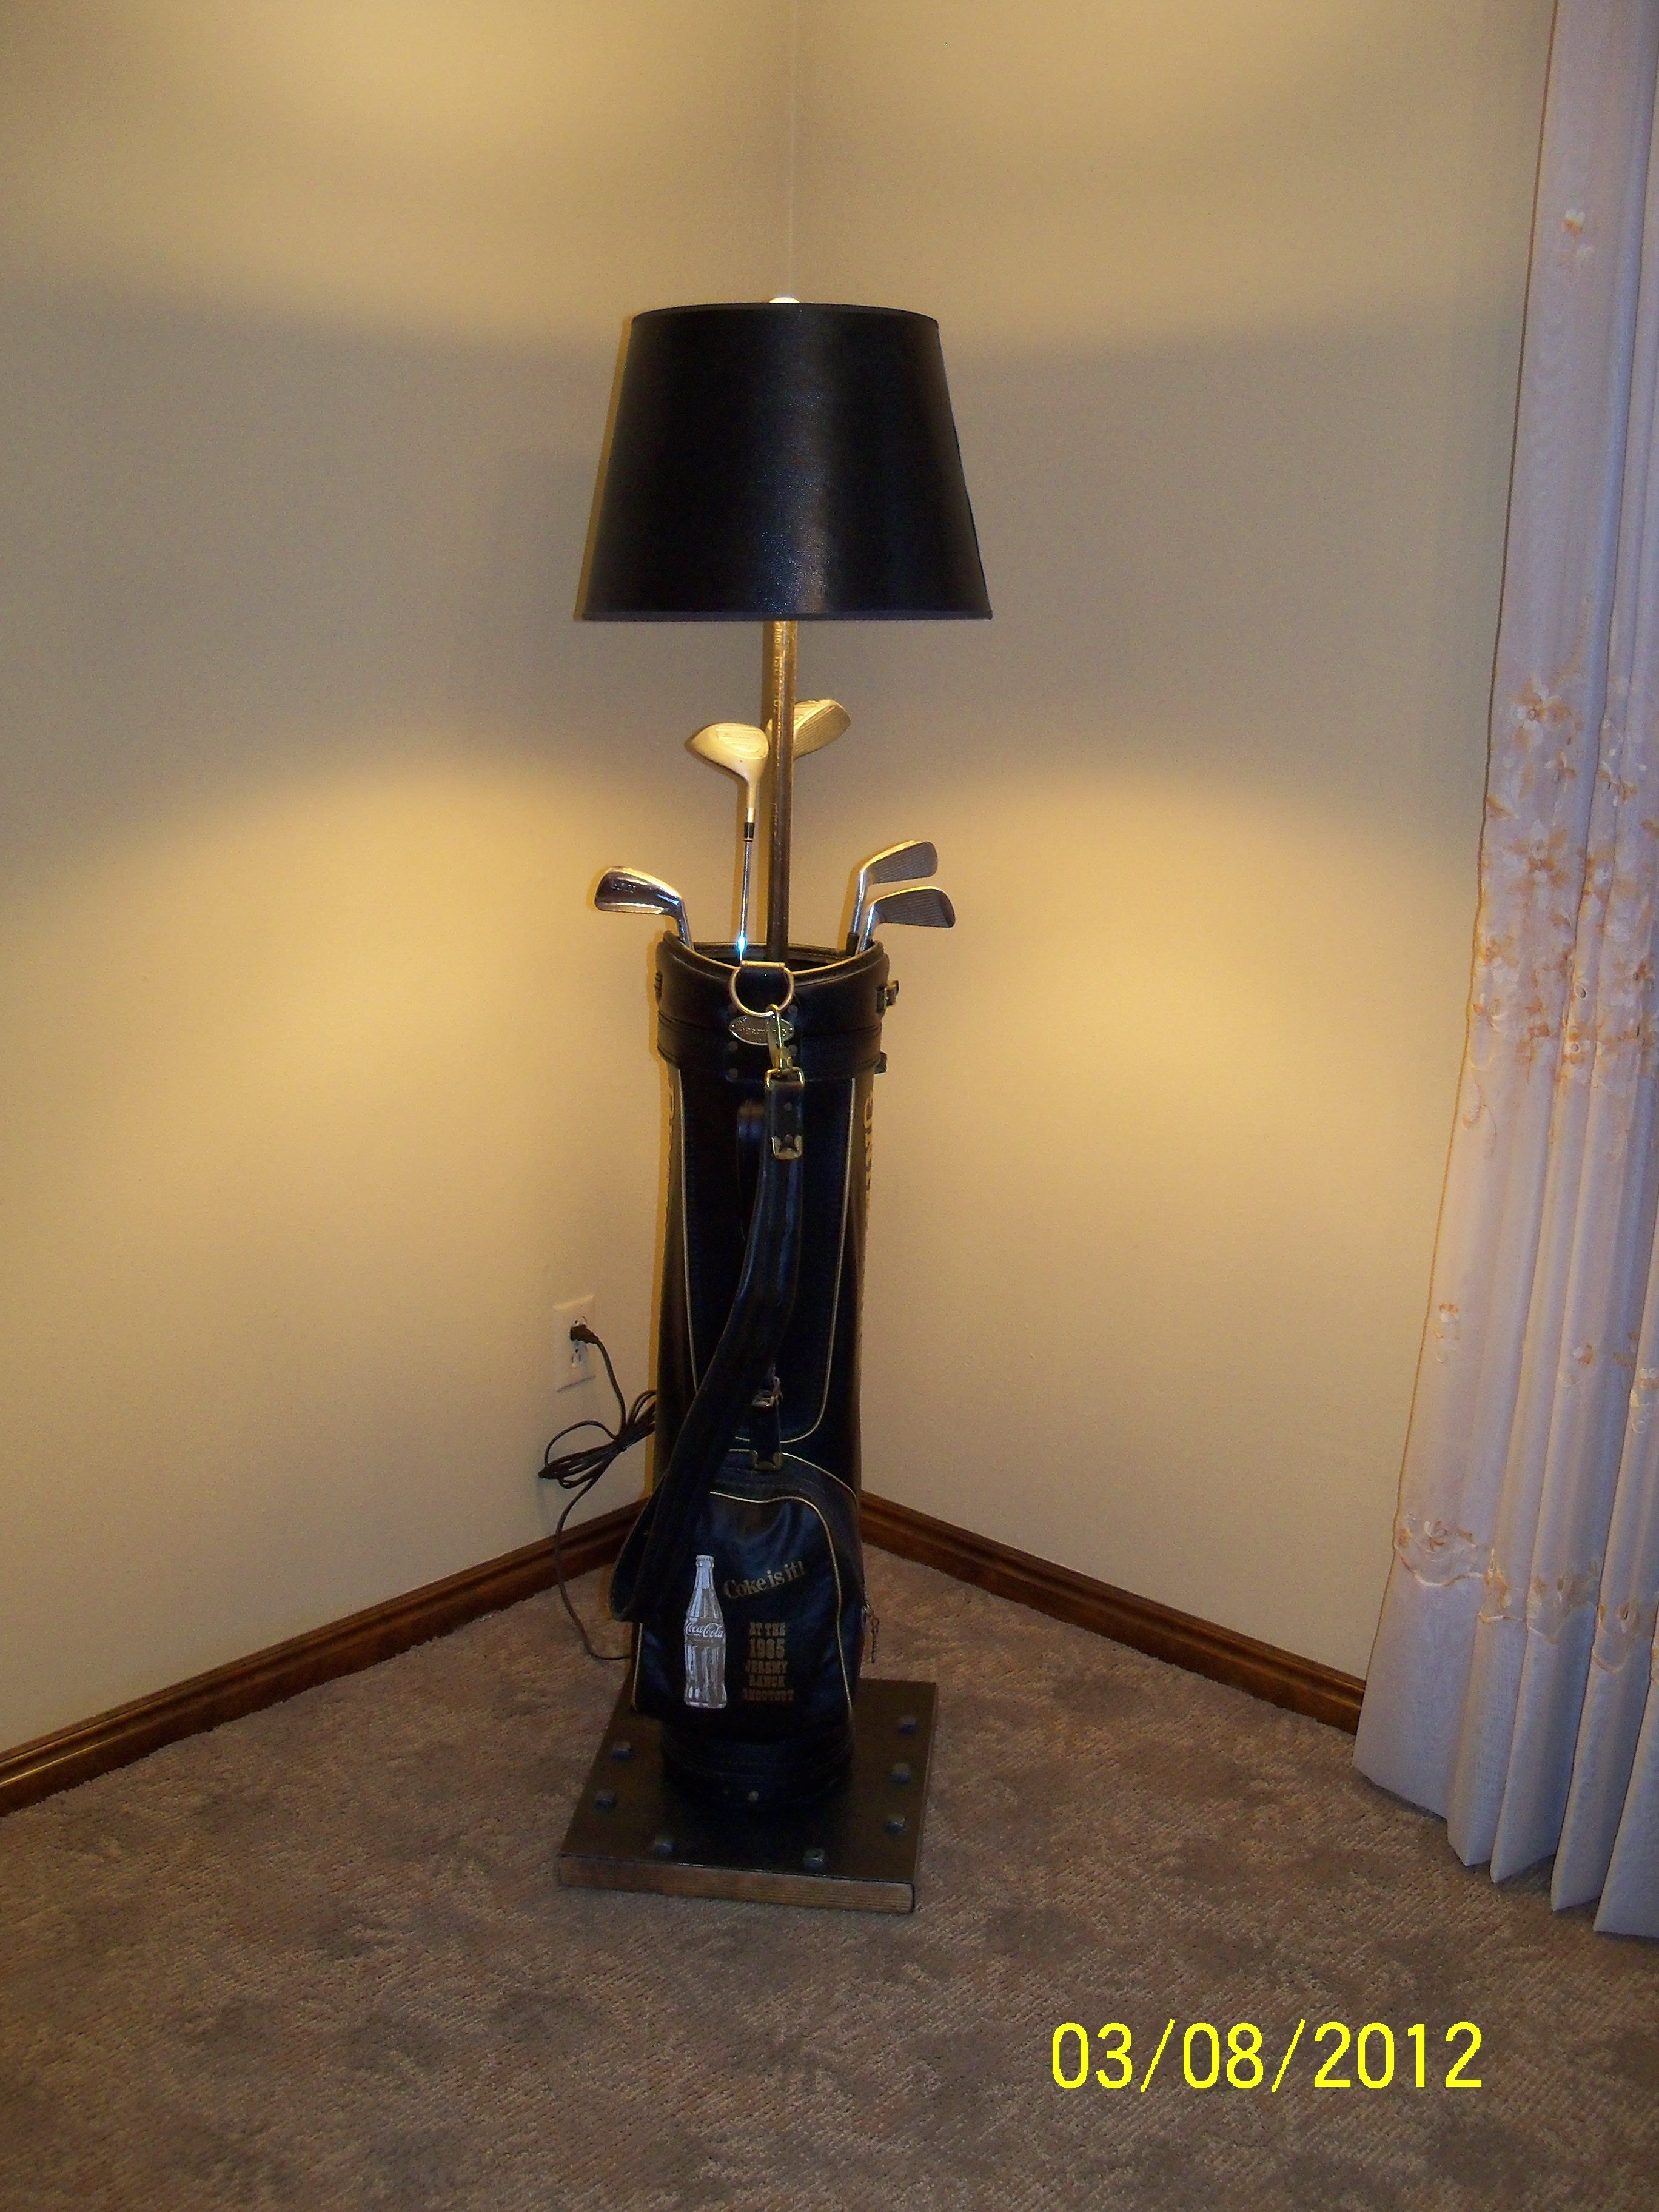 Superior This Is A Jeremy Ranch Shootout, Browning Golf Bag Lamp. It Is Accented By